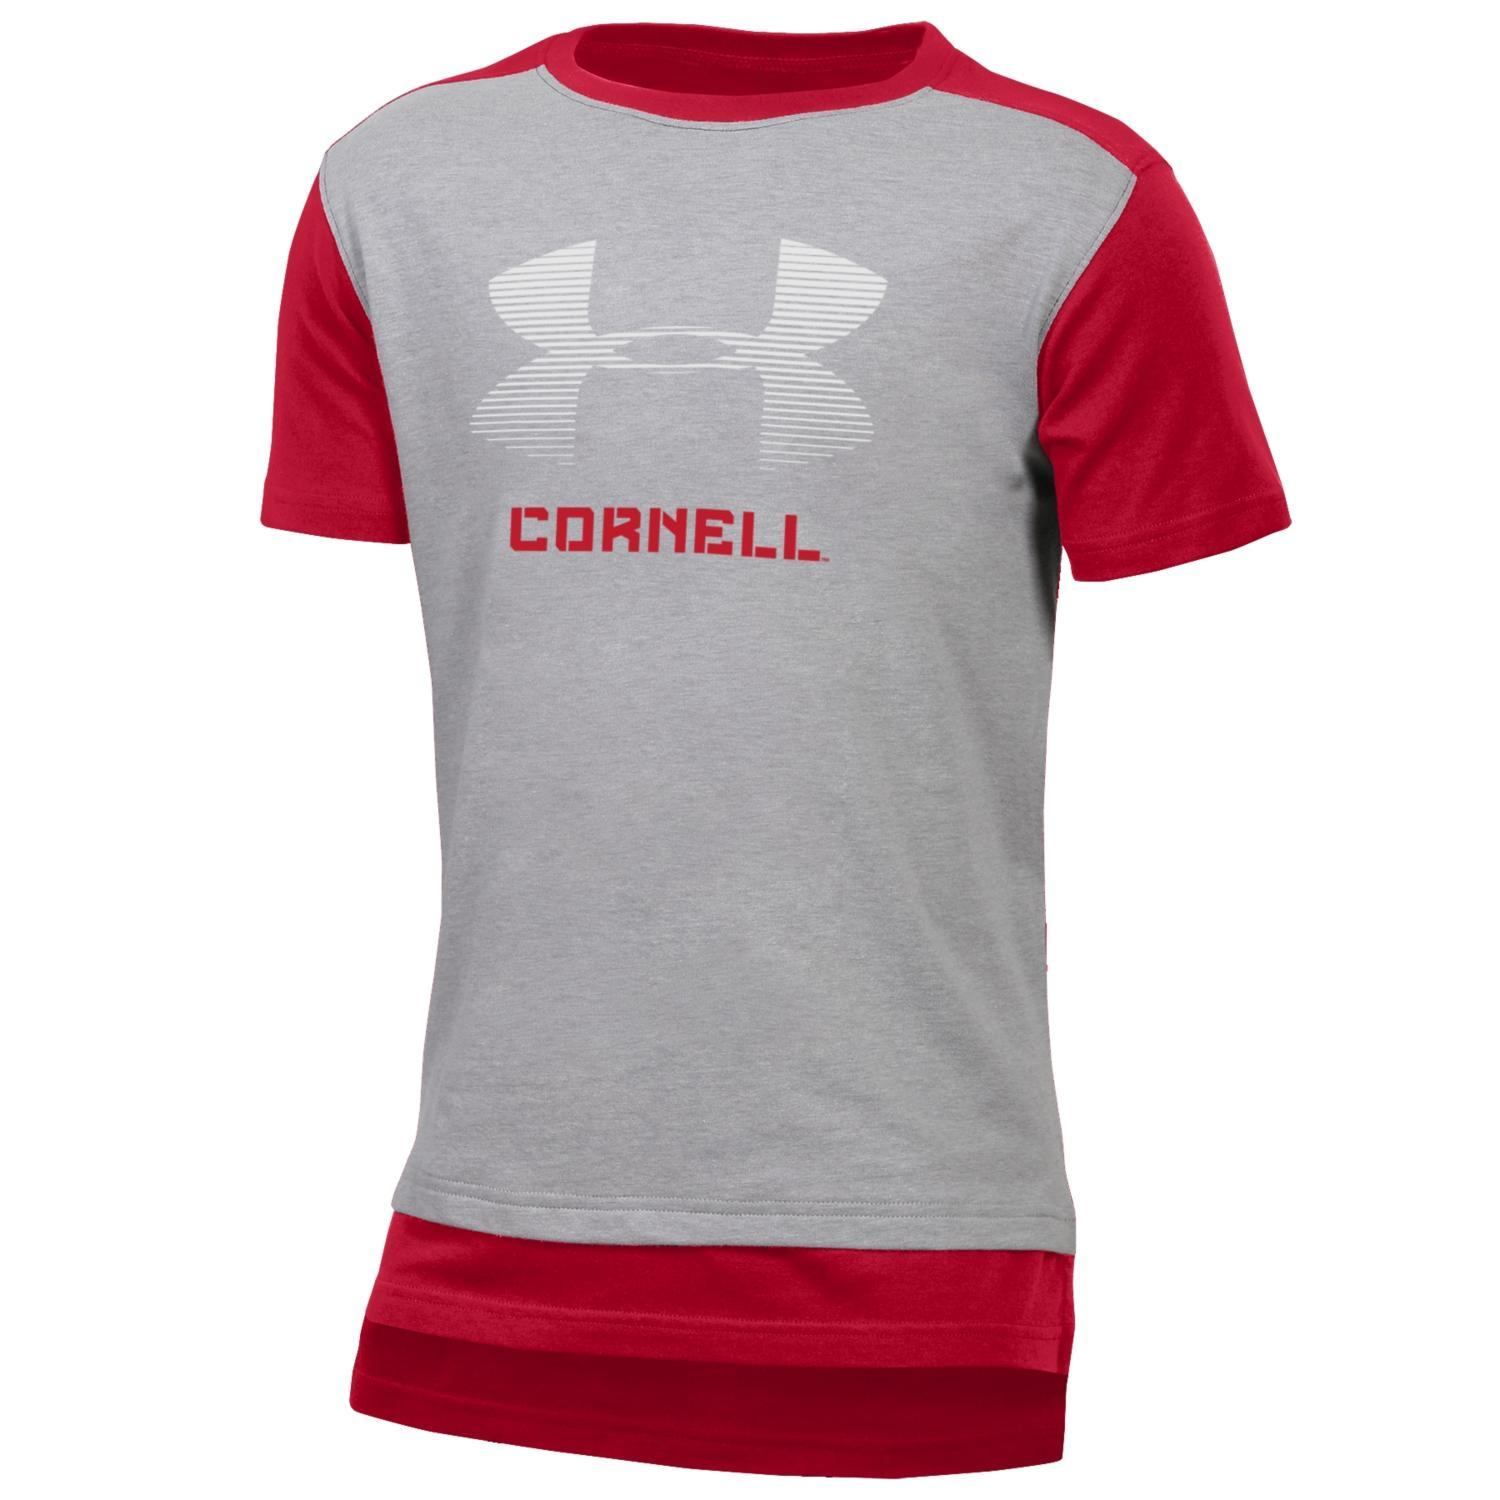 Under Armour Youth Colorblock Tee - Cornell